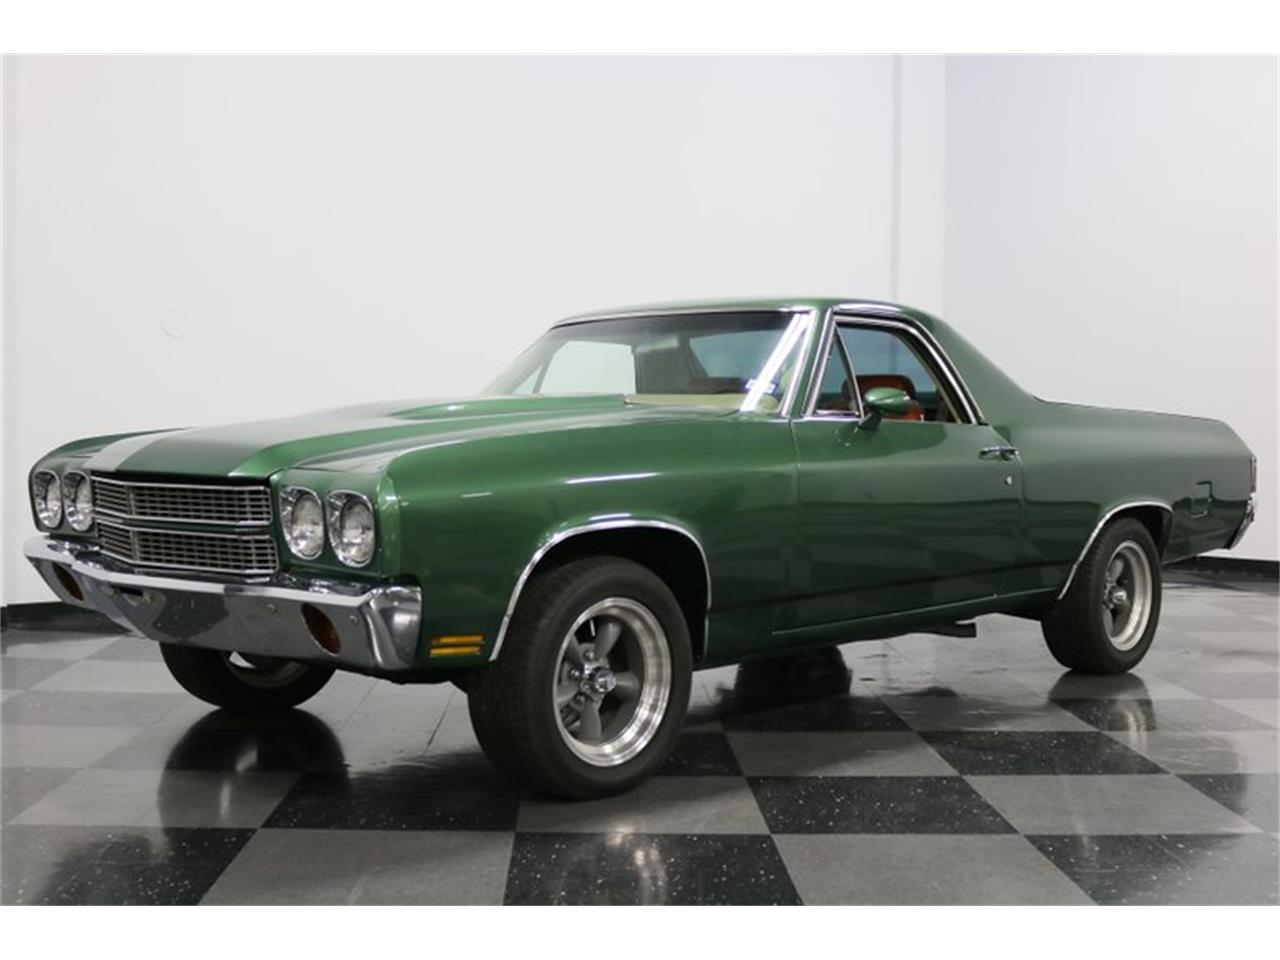 Large Picture of '70 Chevrolet El Camino - $24,995.00 Offered by Streetside Classics - Dallas / Fort Worth - Q9DT